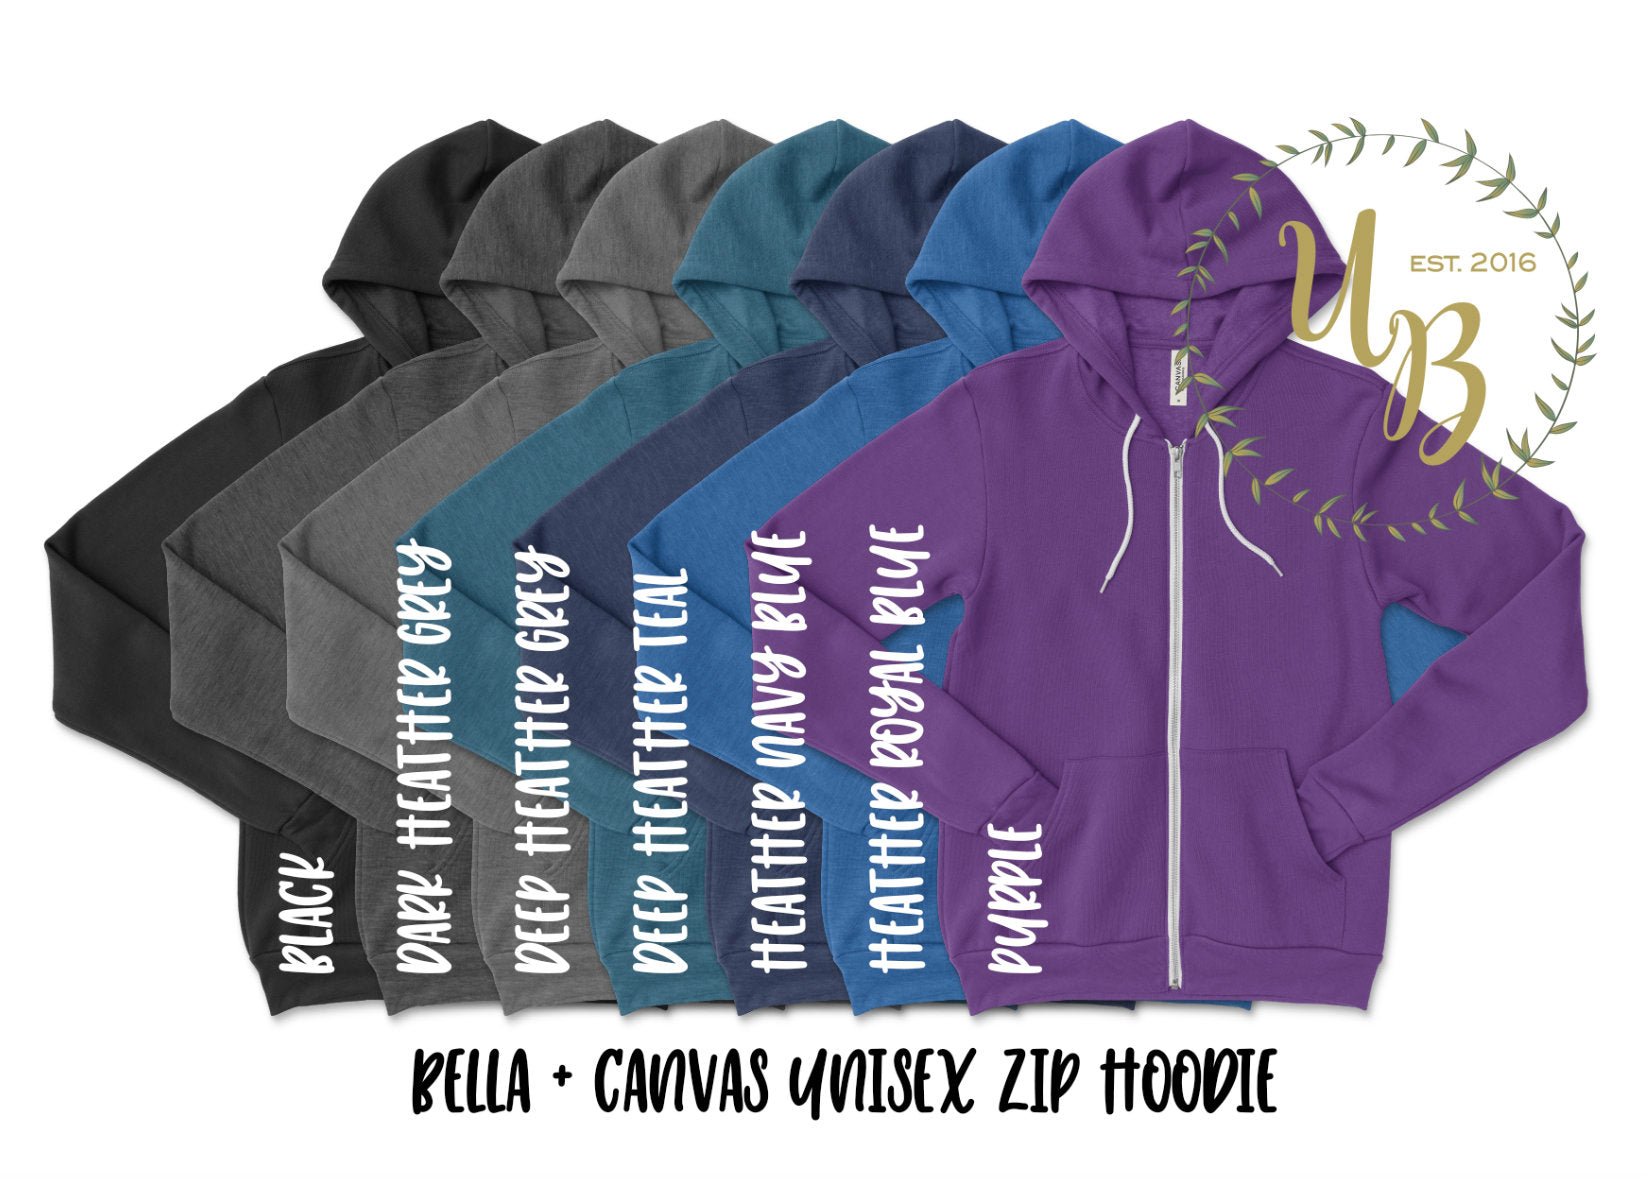 Cold AF Unisex Zip Up Hoodie - It's Freaking Cold - Winter Hoodies - Zipper Hoodie - Personalized Hoodie - It's F ing Cold